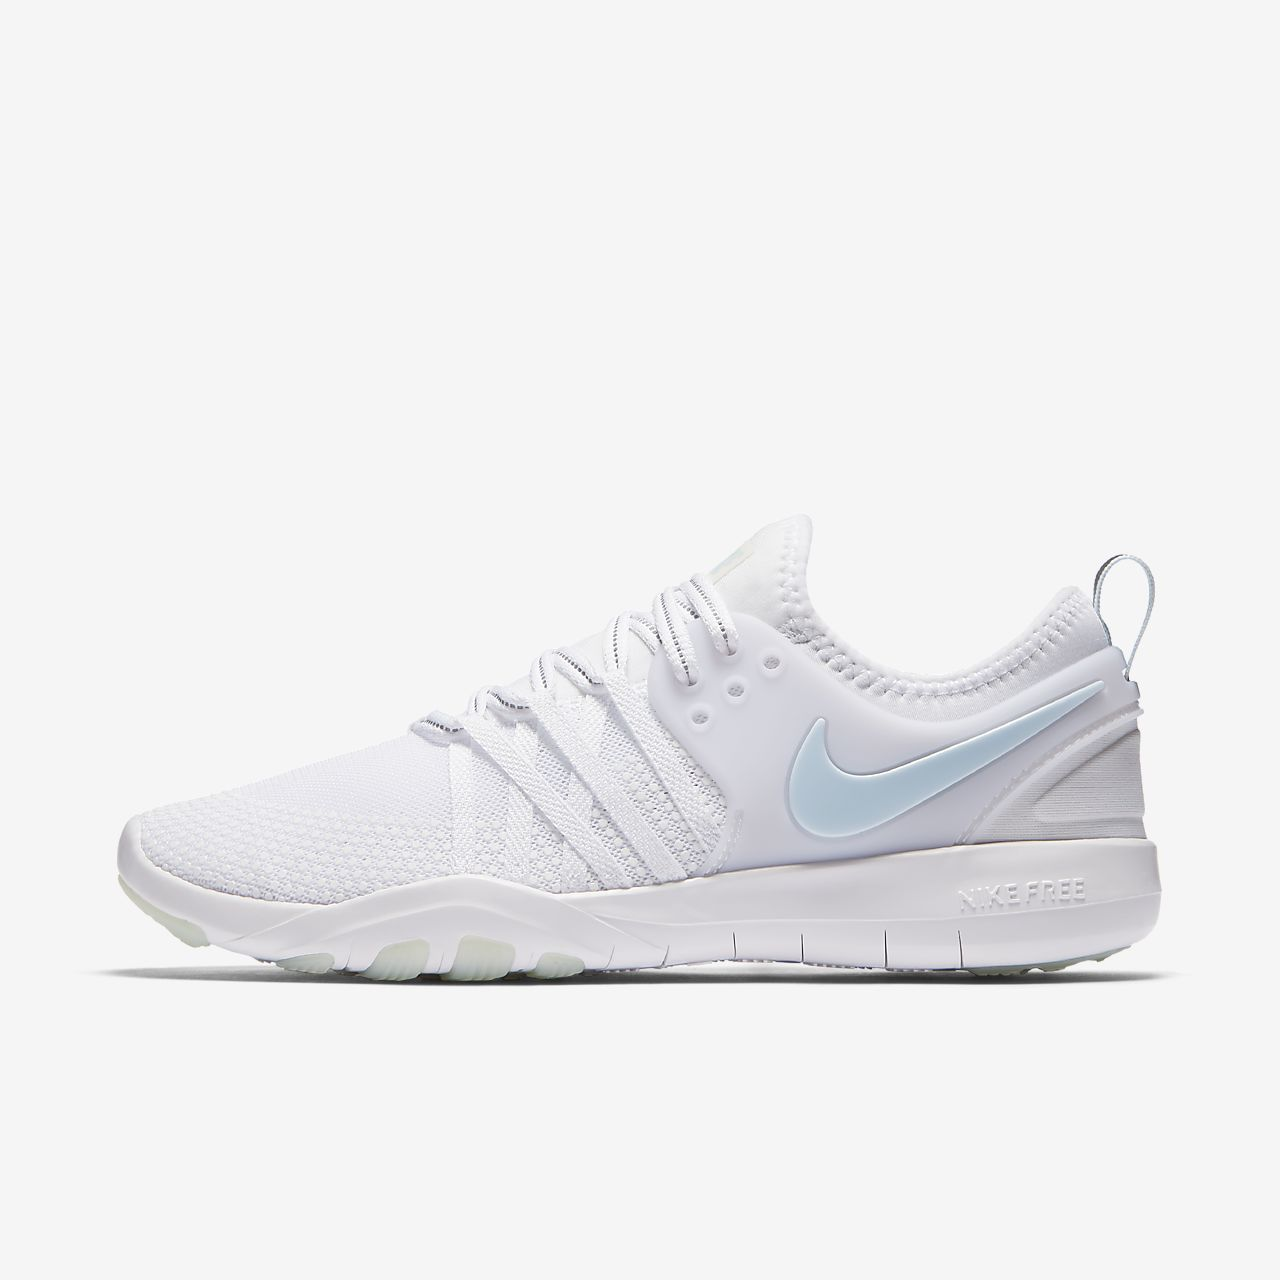 nike free tr7 reflect review of related